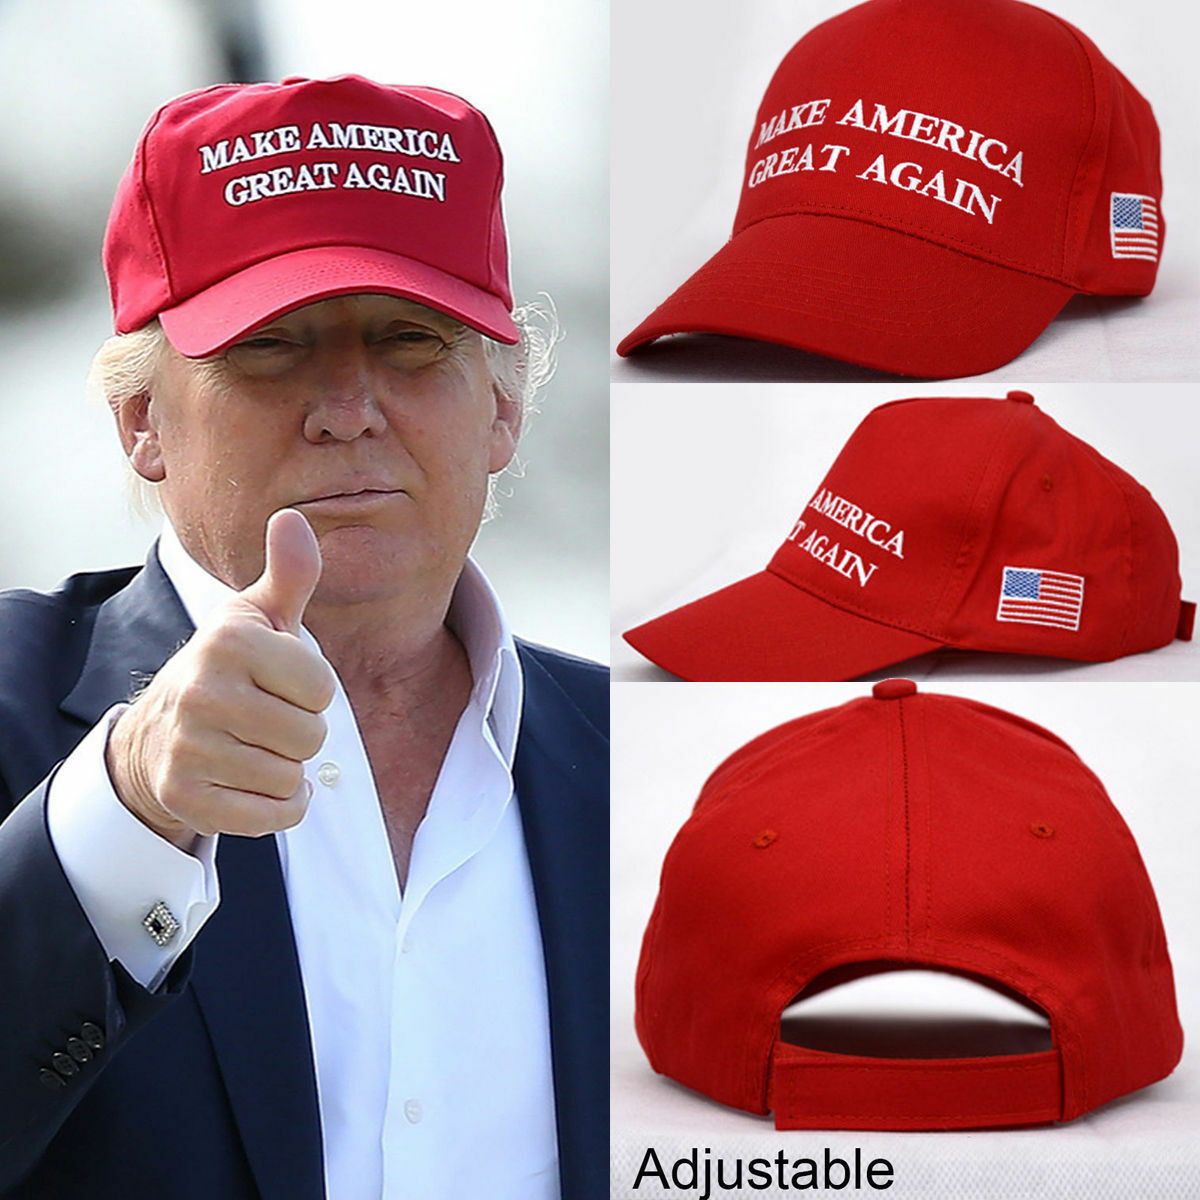 Make America Great Again Hat Donald Trump 2017 Republican Adjustable Red Cap